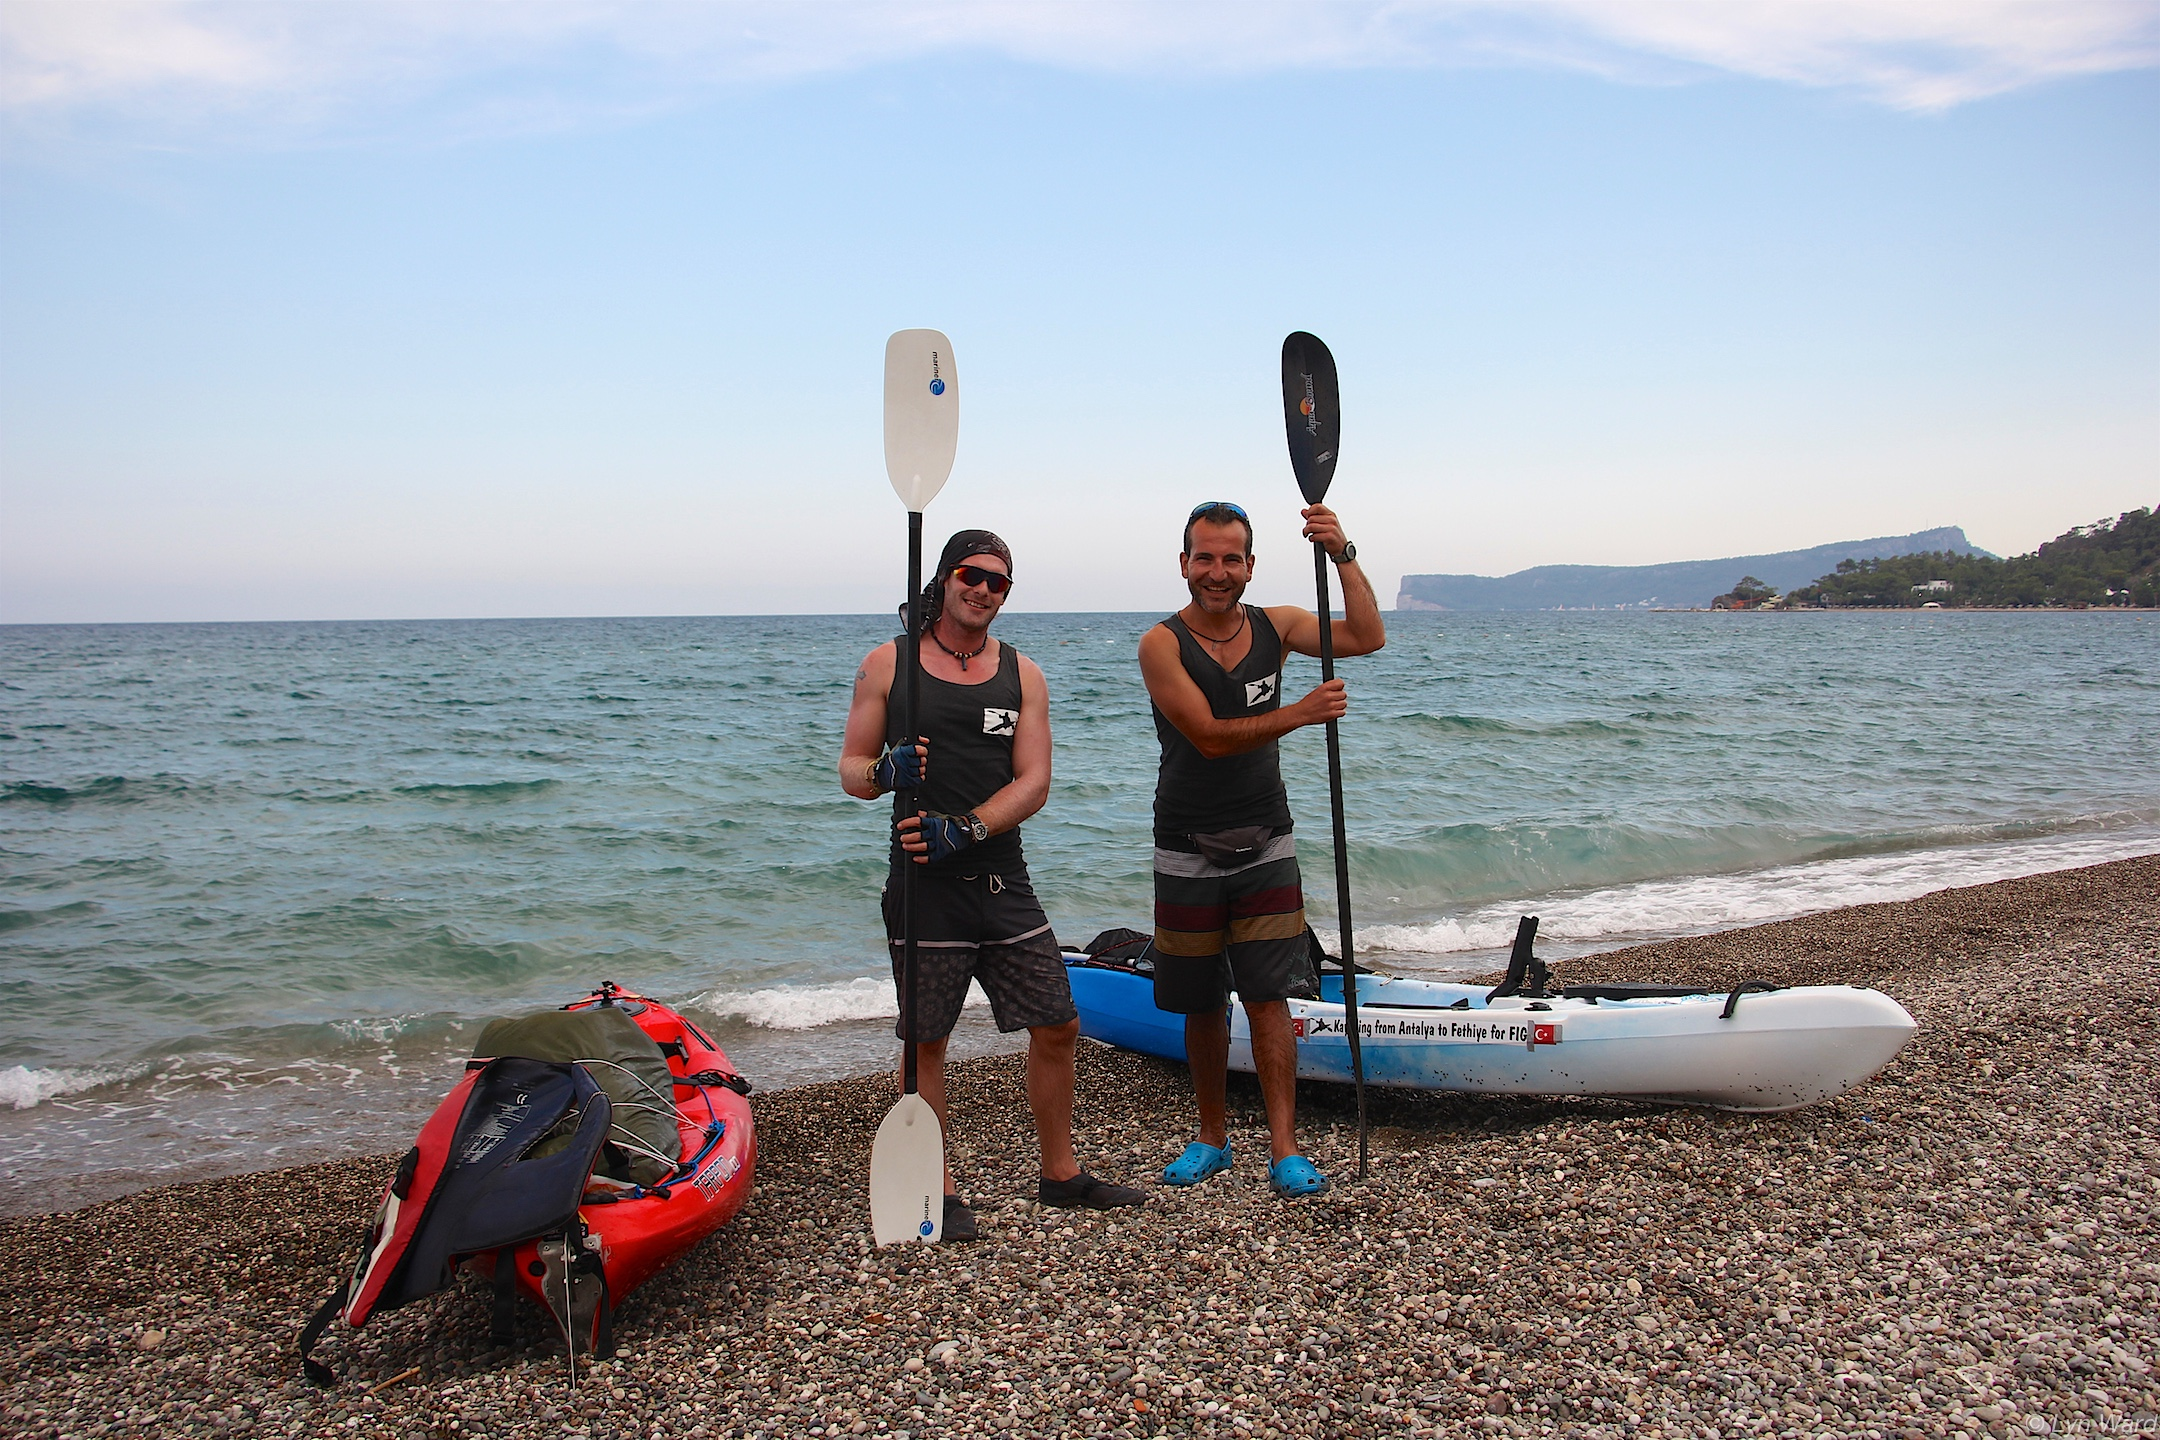 Kayaking from Antalya to Fethiye for FIG